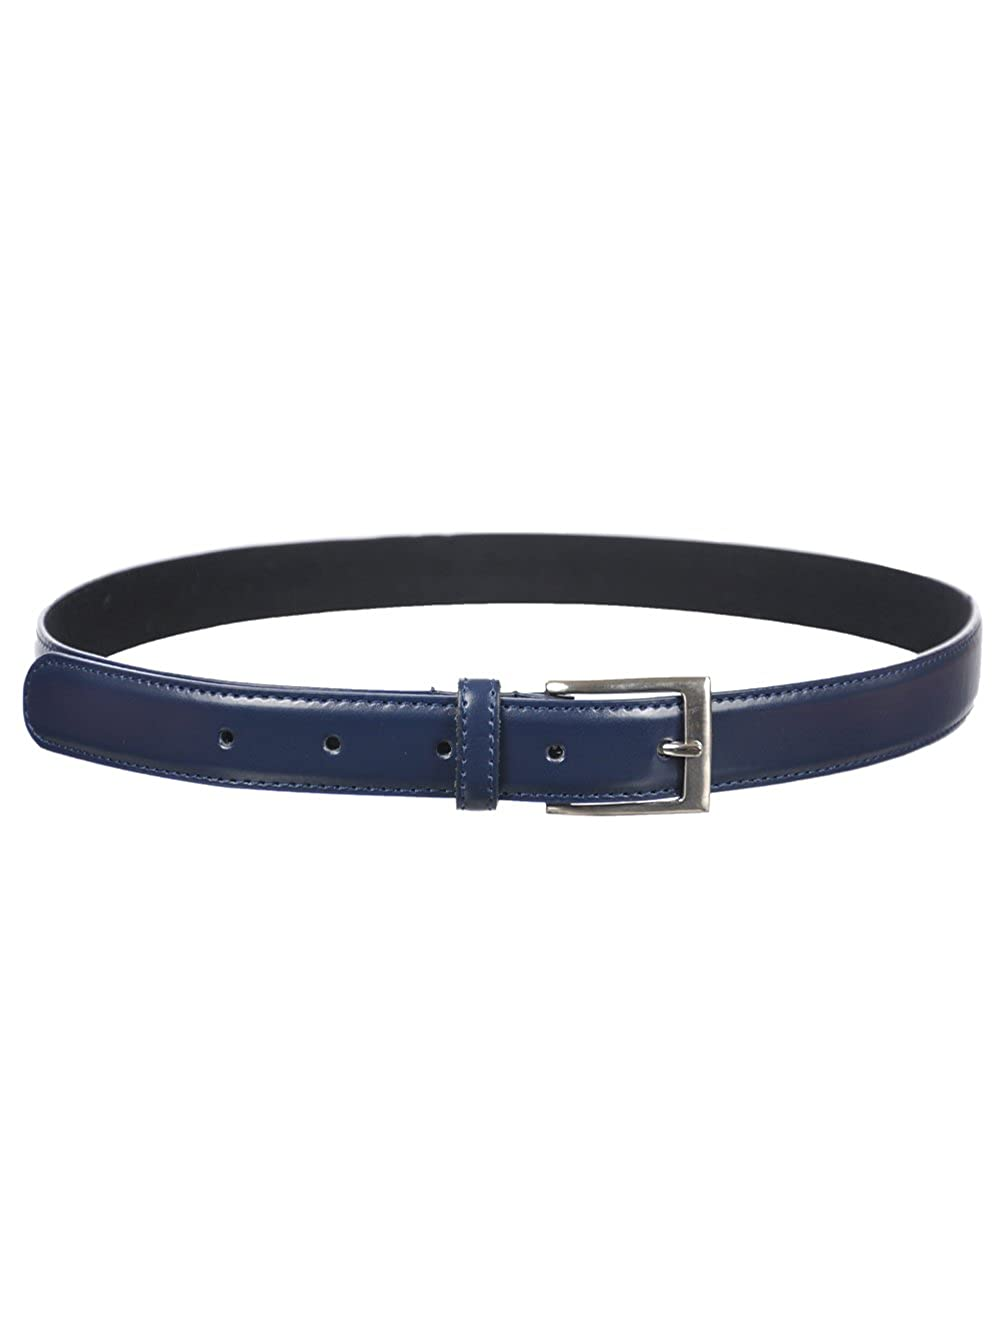 Cookie's Brand Genuine Leather Belt 26 Cookie' s Brand